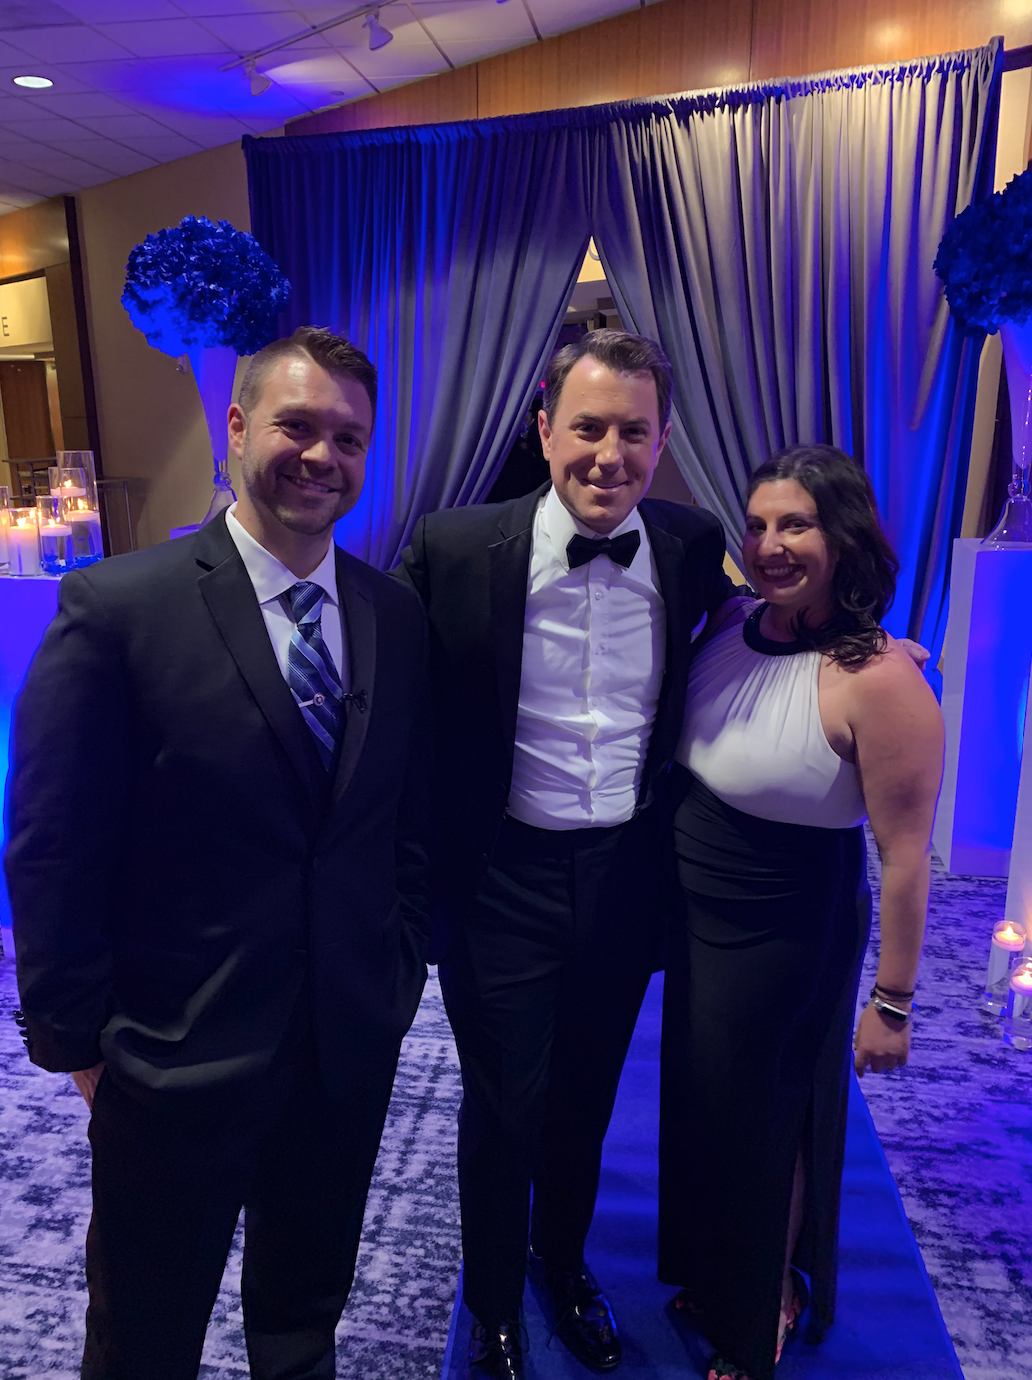 Todd Piro from Fox and Friends and producer Sam pose for a picture at the Blue Honor Gala with LET National Spokesman Kyle Reyes